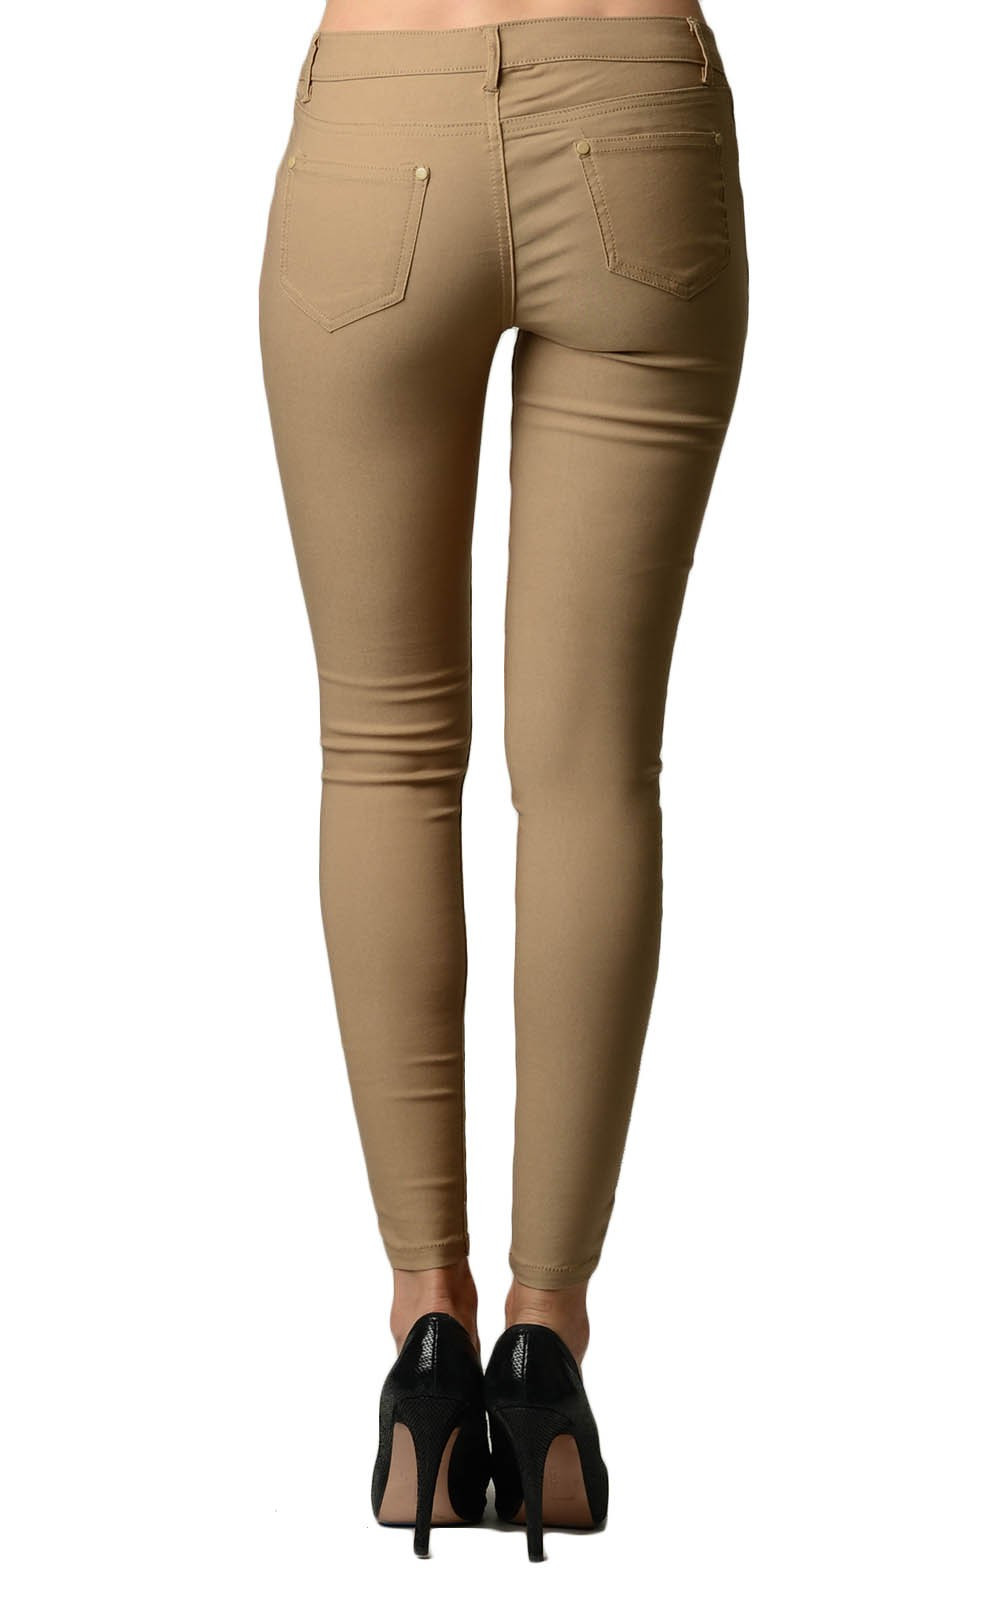 Color Jeggings Super Spandex Slim Skinny Long Pants. Material: 74% Rayon, 22% Nyron, 4% Spandex(Man Made). Actual Color might be Different due to Screen Brightness.